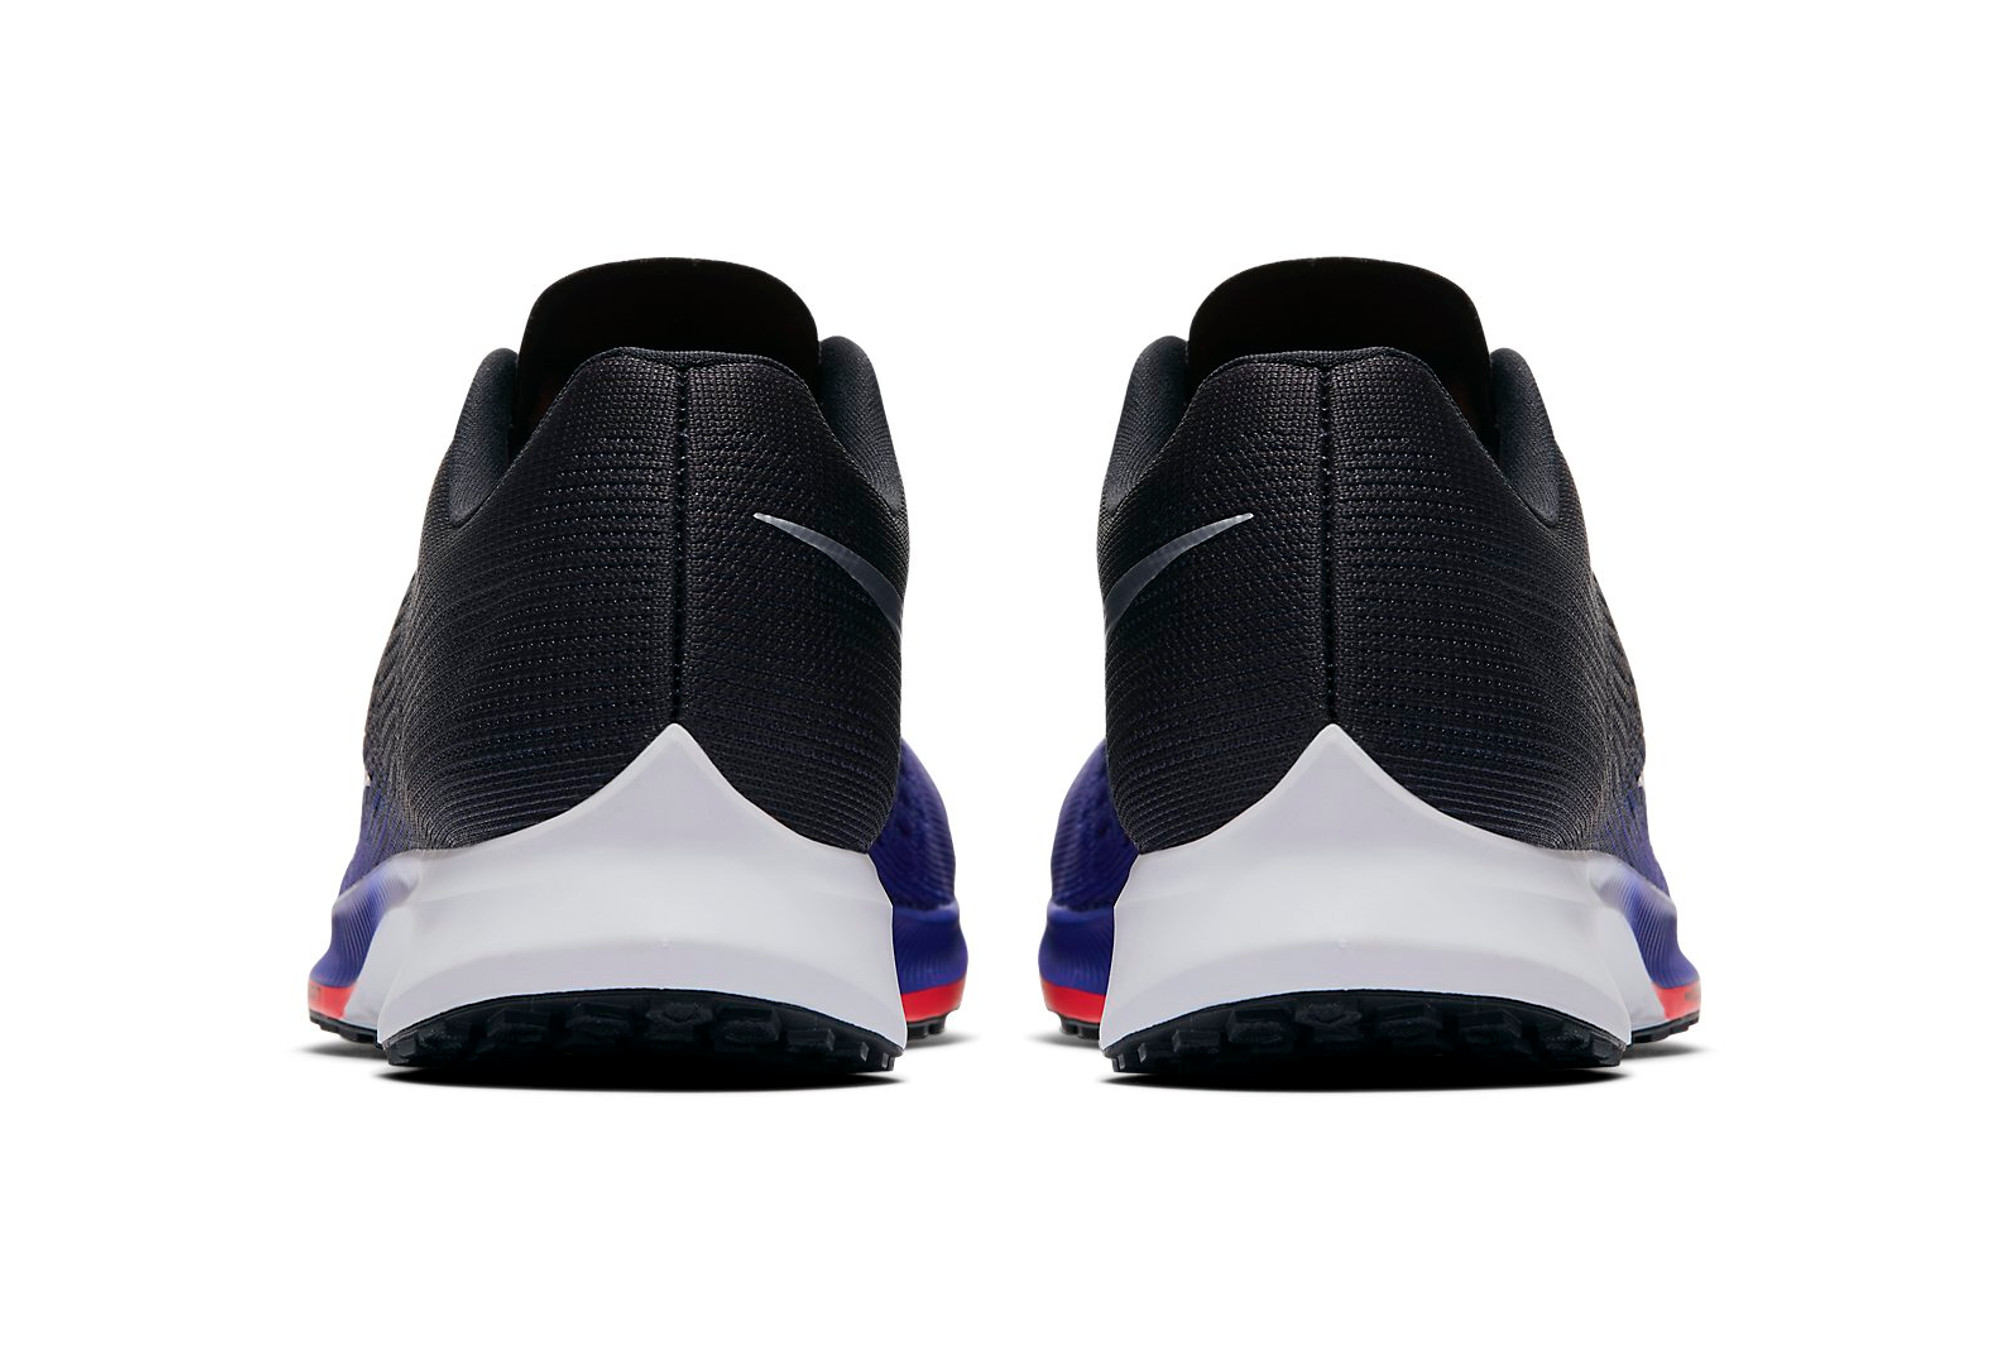 Nike 9 Violet Noir Elite Zoom Air De Chaussures Triathlon FRqEv